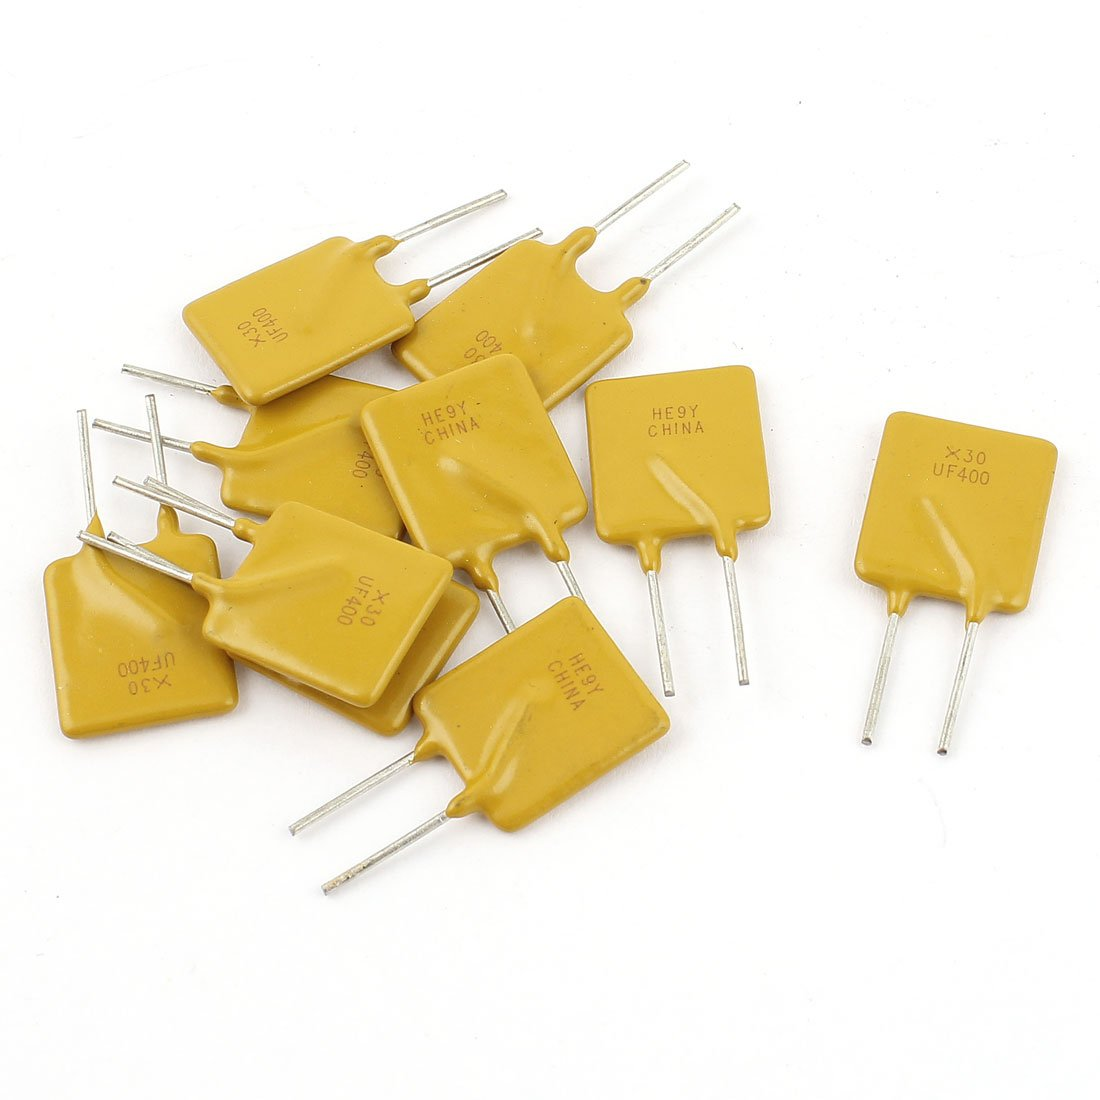 10 Pcs 30V 4A Resettable Fuse Radial Through Hole PPTC Polyswitch uxcell SYNCTEA009130